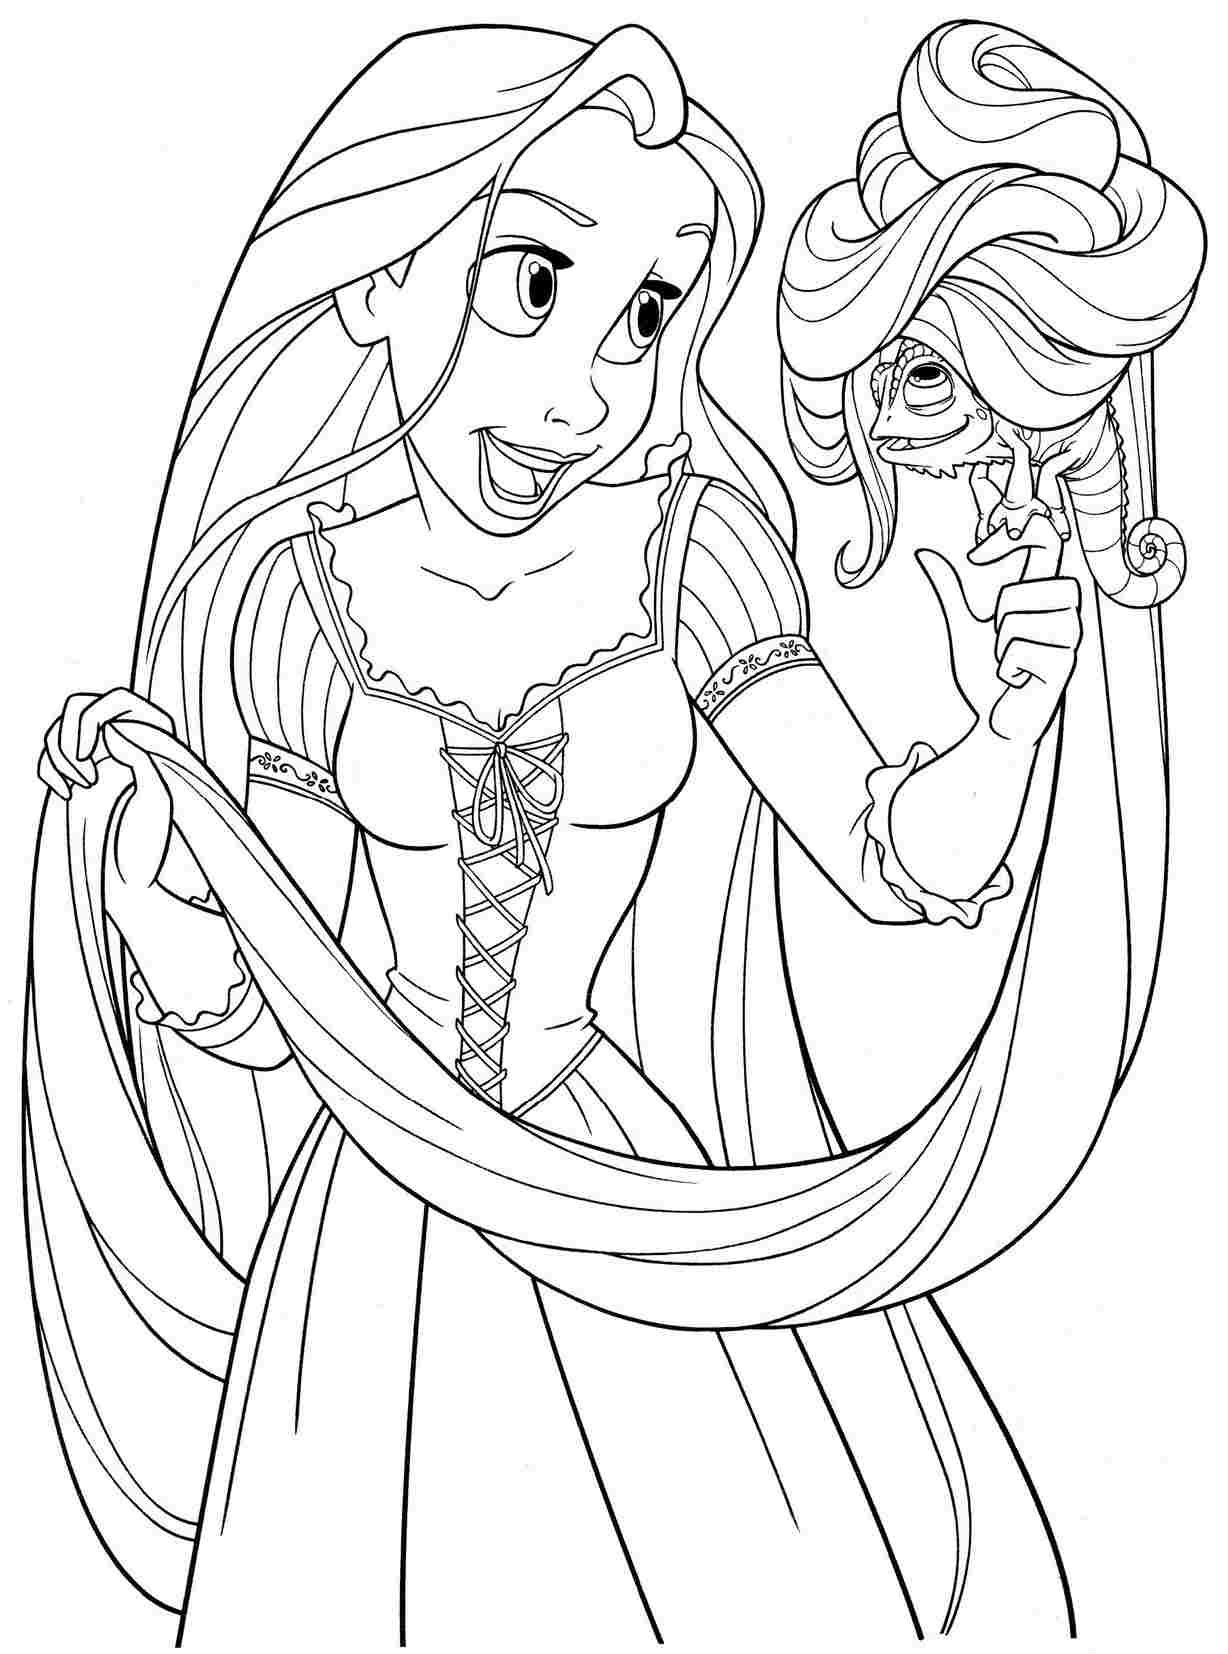 Free coloring pages disney princesses - Printable Free Colouring Pages Disney Princess Rapunzel For Kids Boys